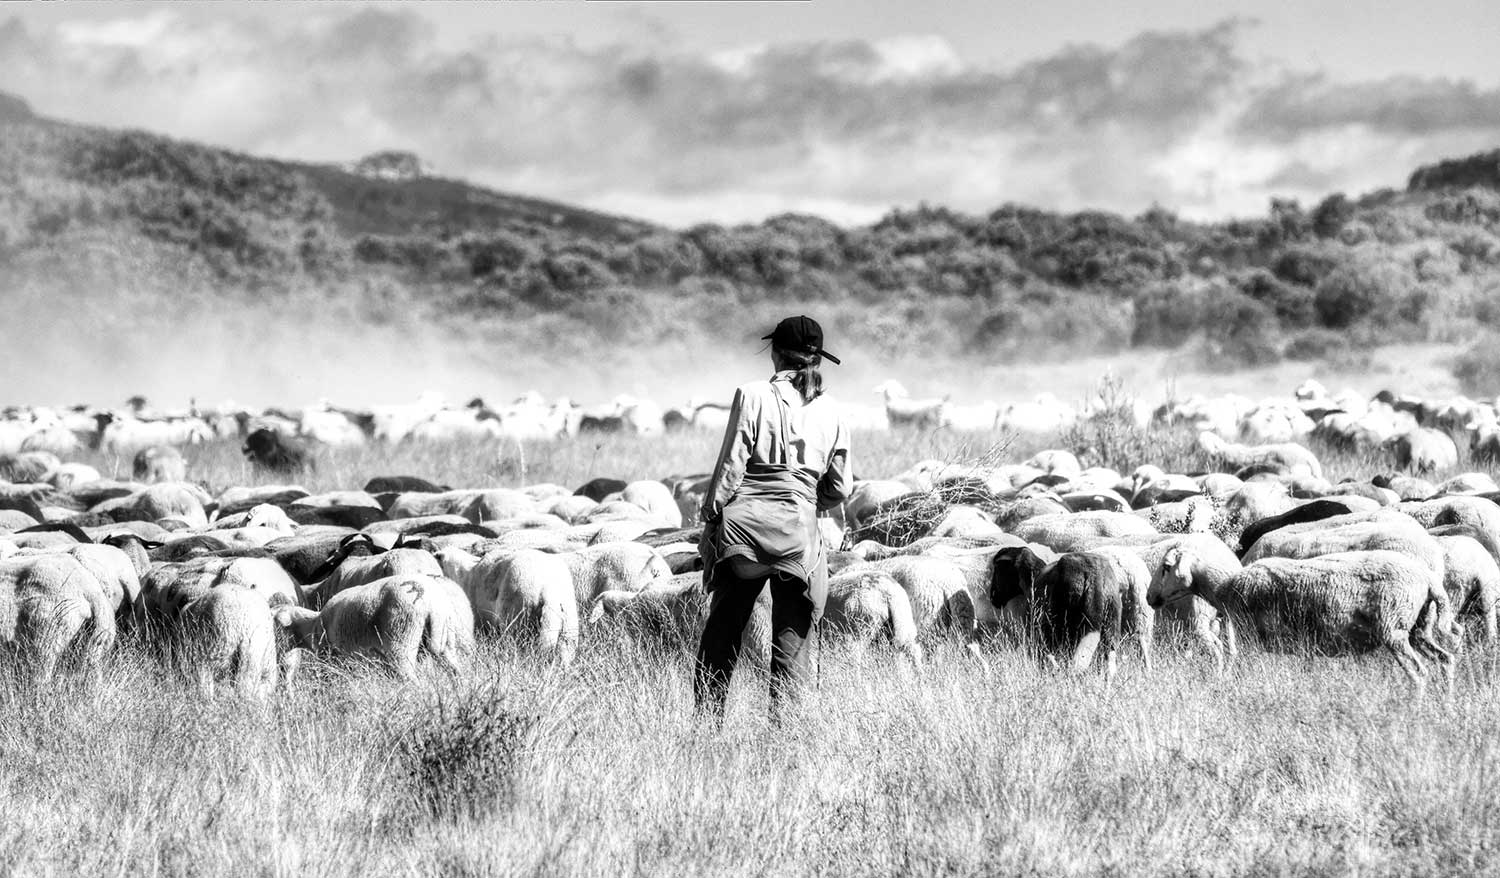 Transhumance of sheep in Aliste, by AMNC project   Mobile Pastoralism in the Mediterranean